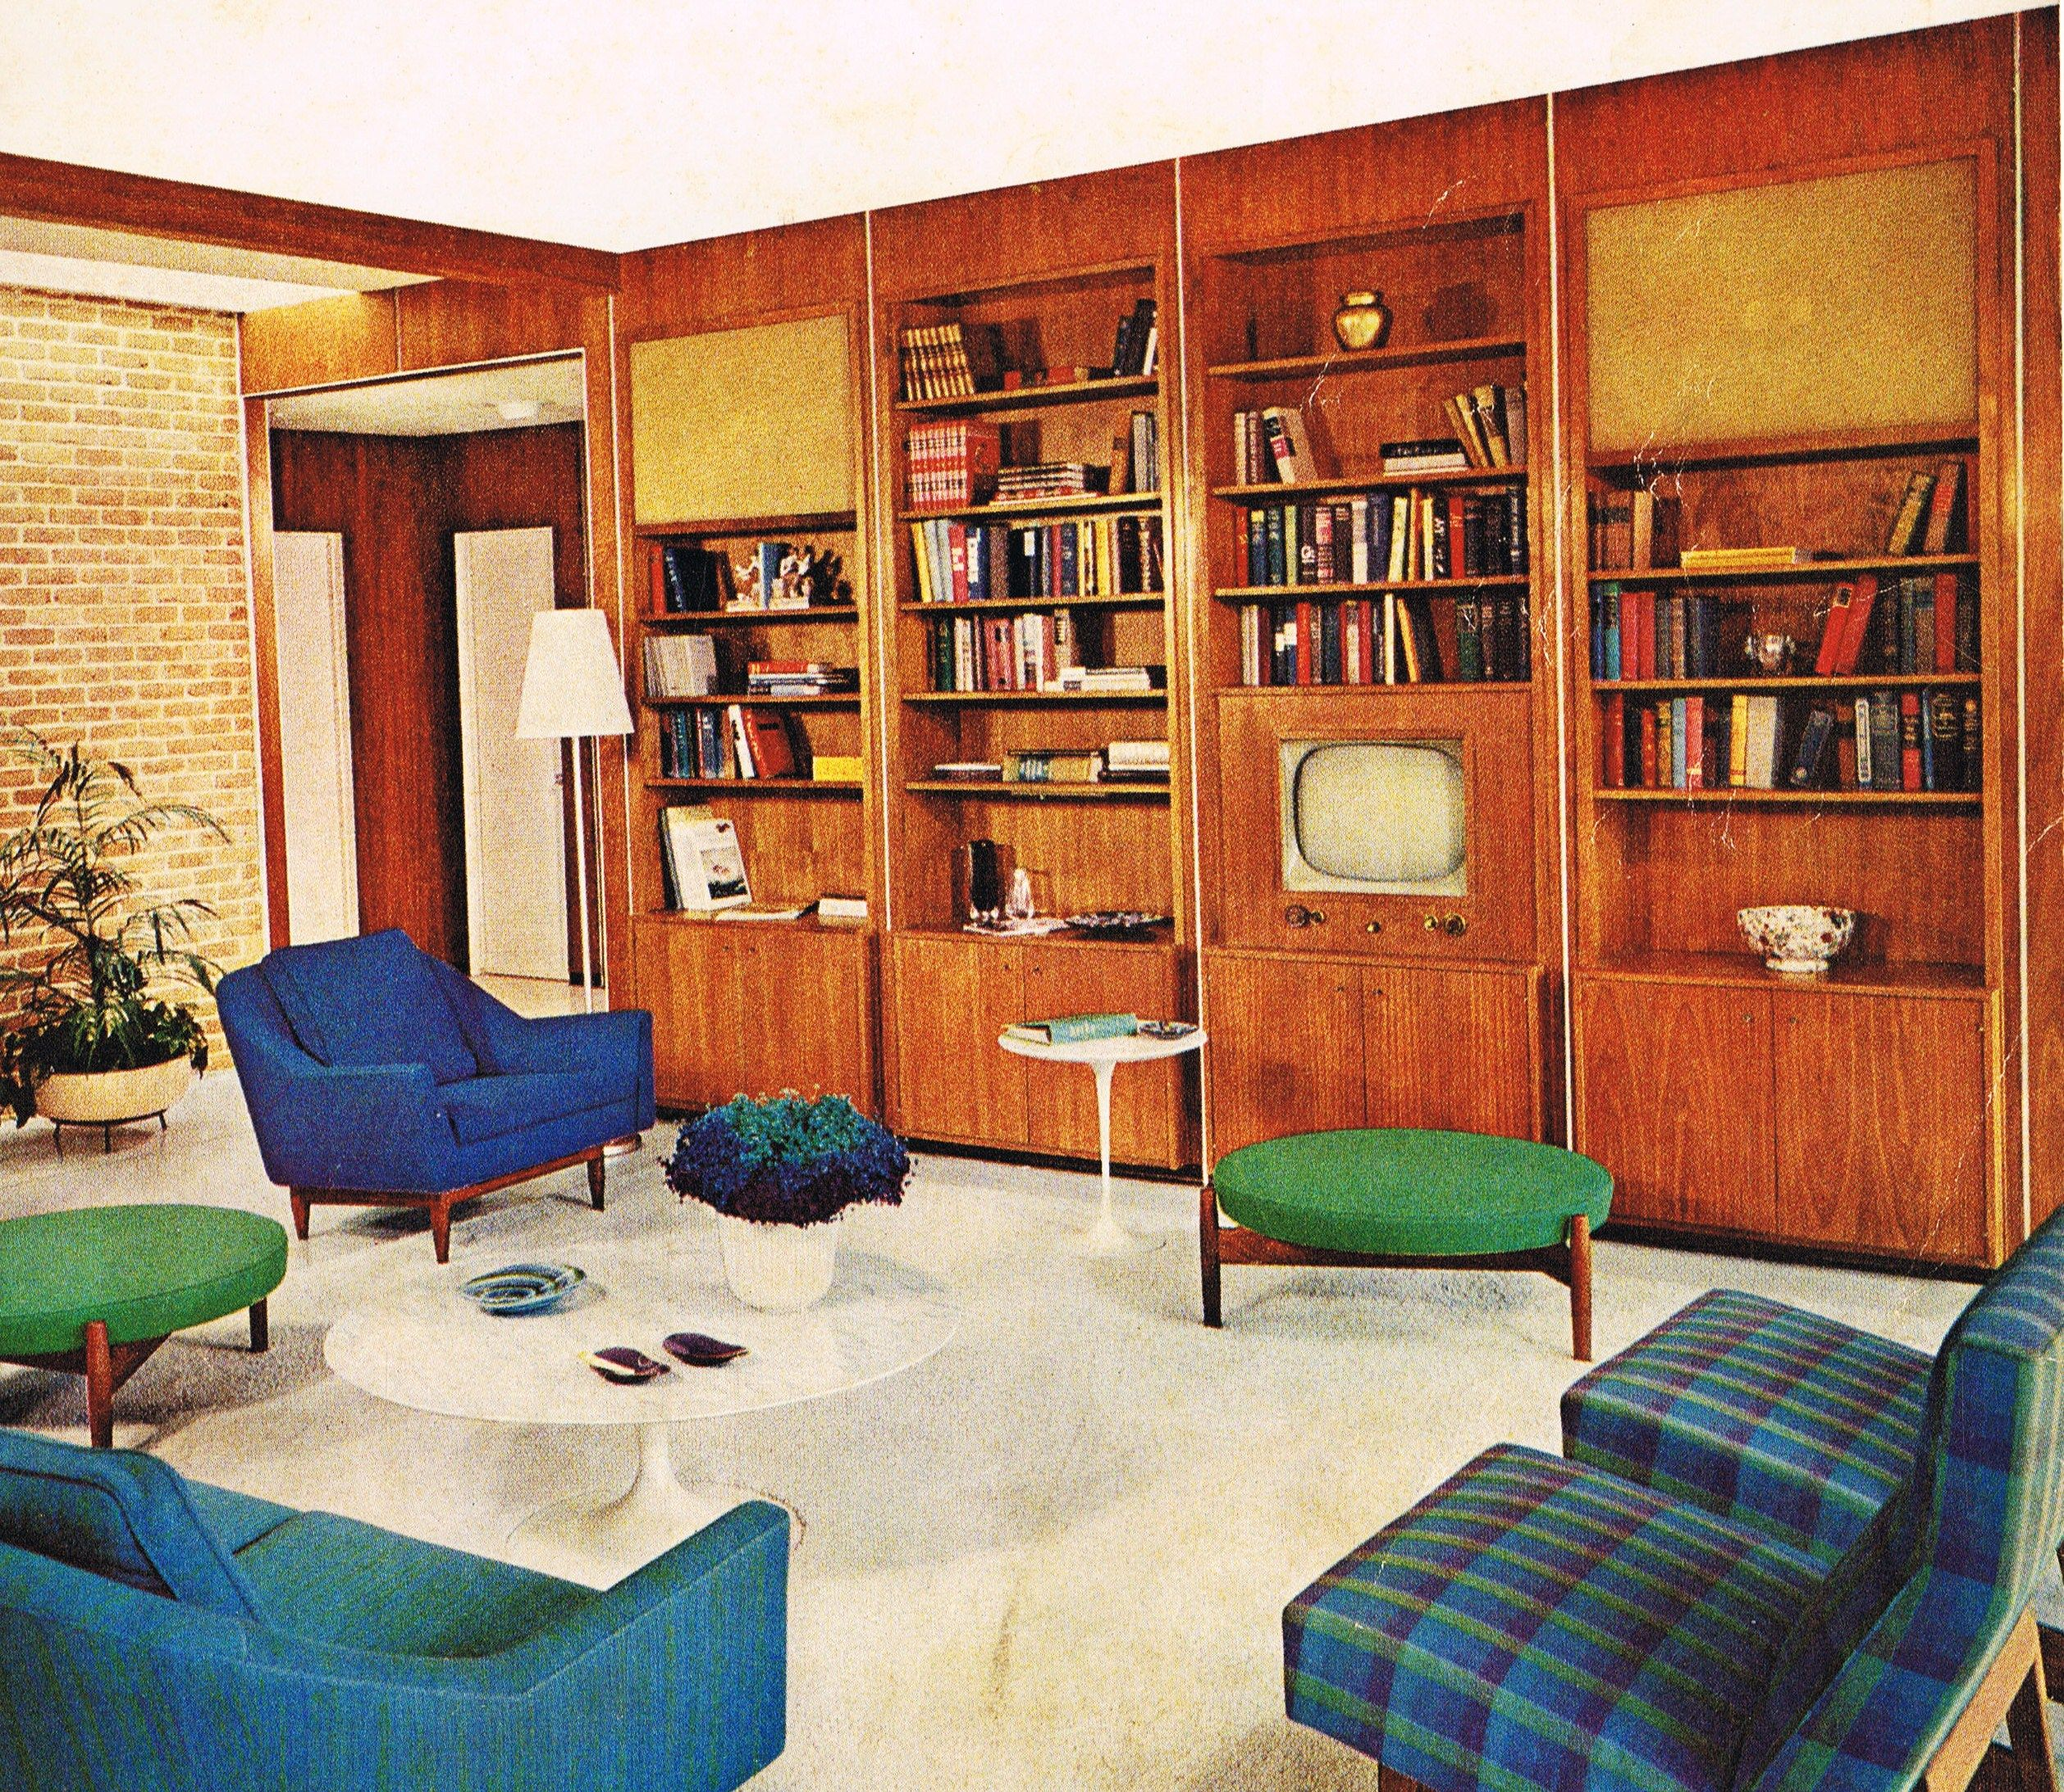 65 Cool Mid Century Living Room Decor Ideas: 60's Wall Unit With Built-in TV